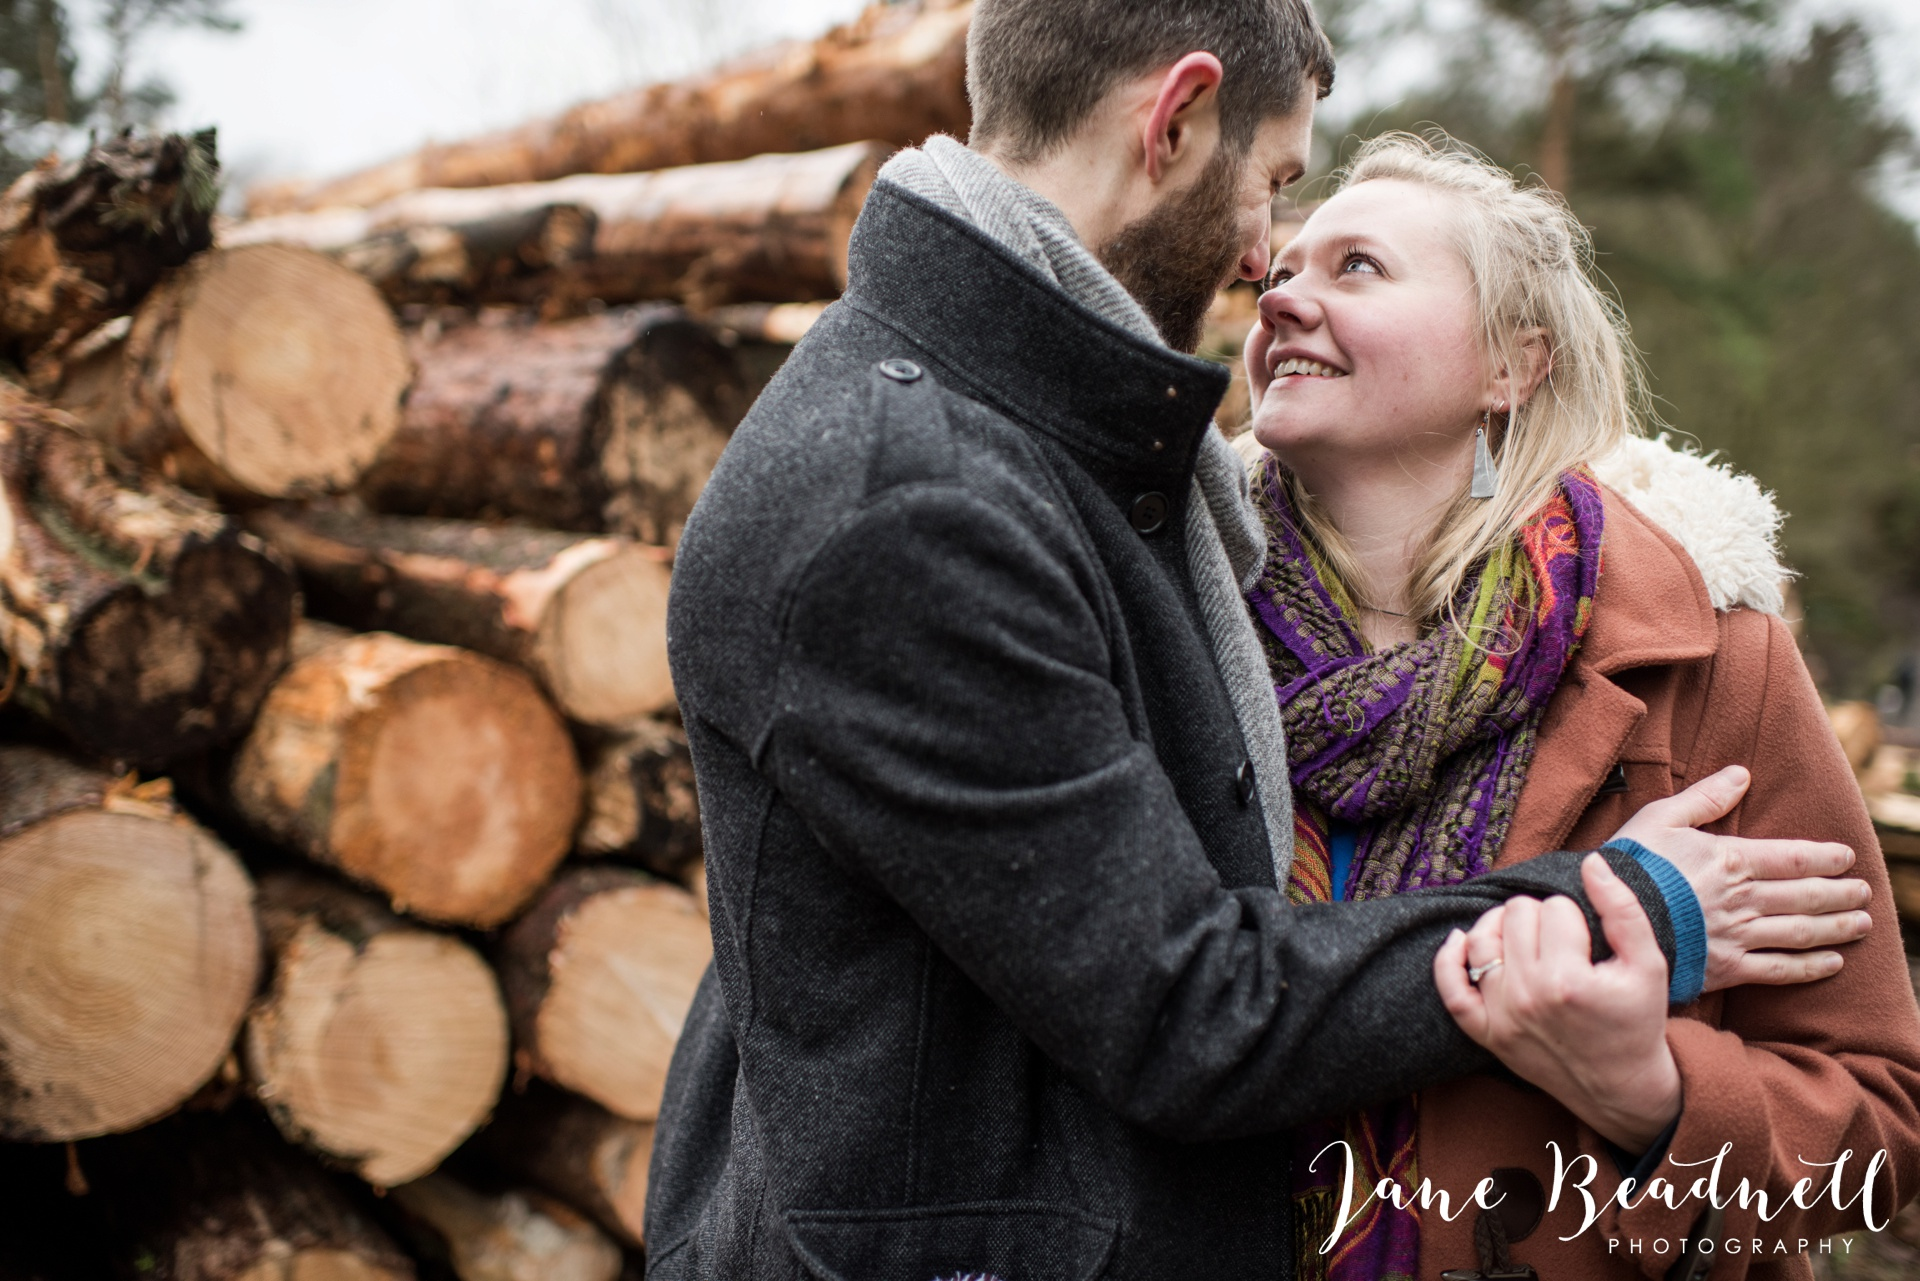 engagement photography Chevin jane beadnell wedding photographer Otley_0029